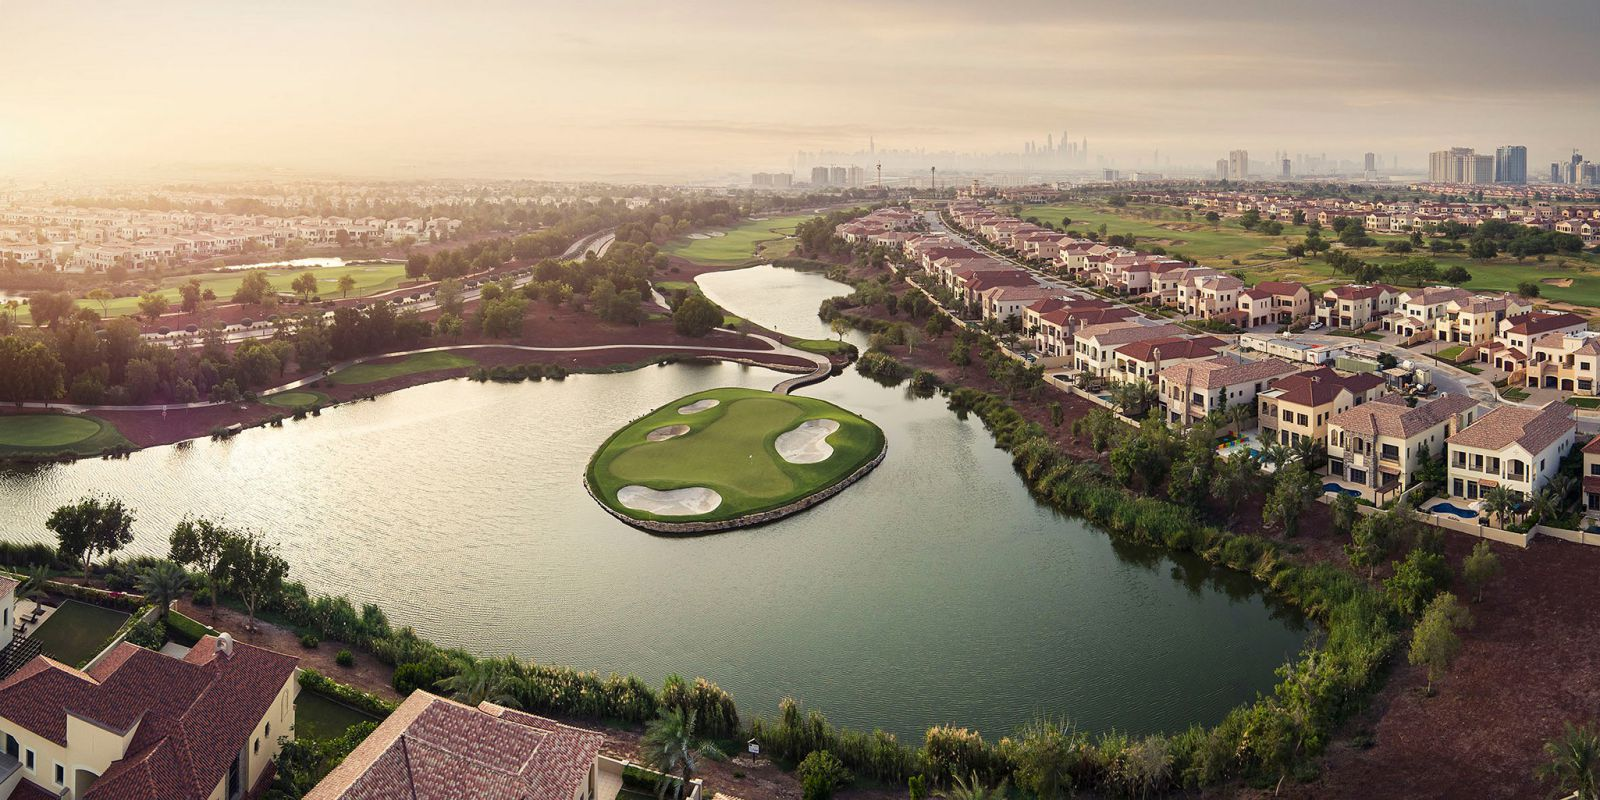 JUMEIRAH GOLF ESTATES RESPONDS TO MARKET DEMAND WITH EXCLUSIVE OFFER FOR ALANDALUS AND REDWOOD PARK AT DPWTC